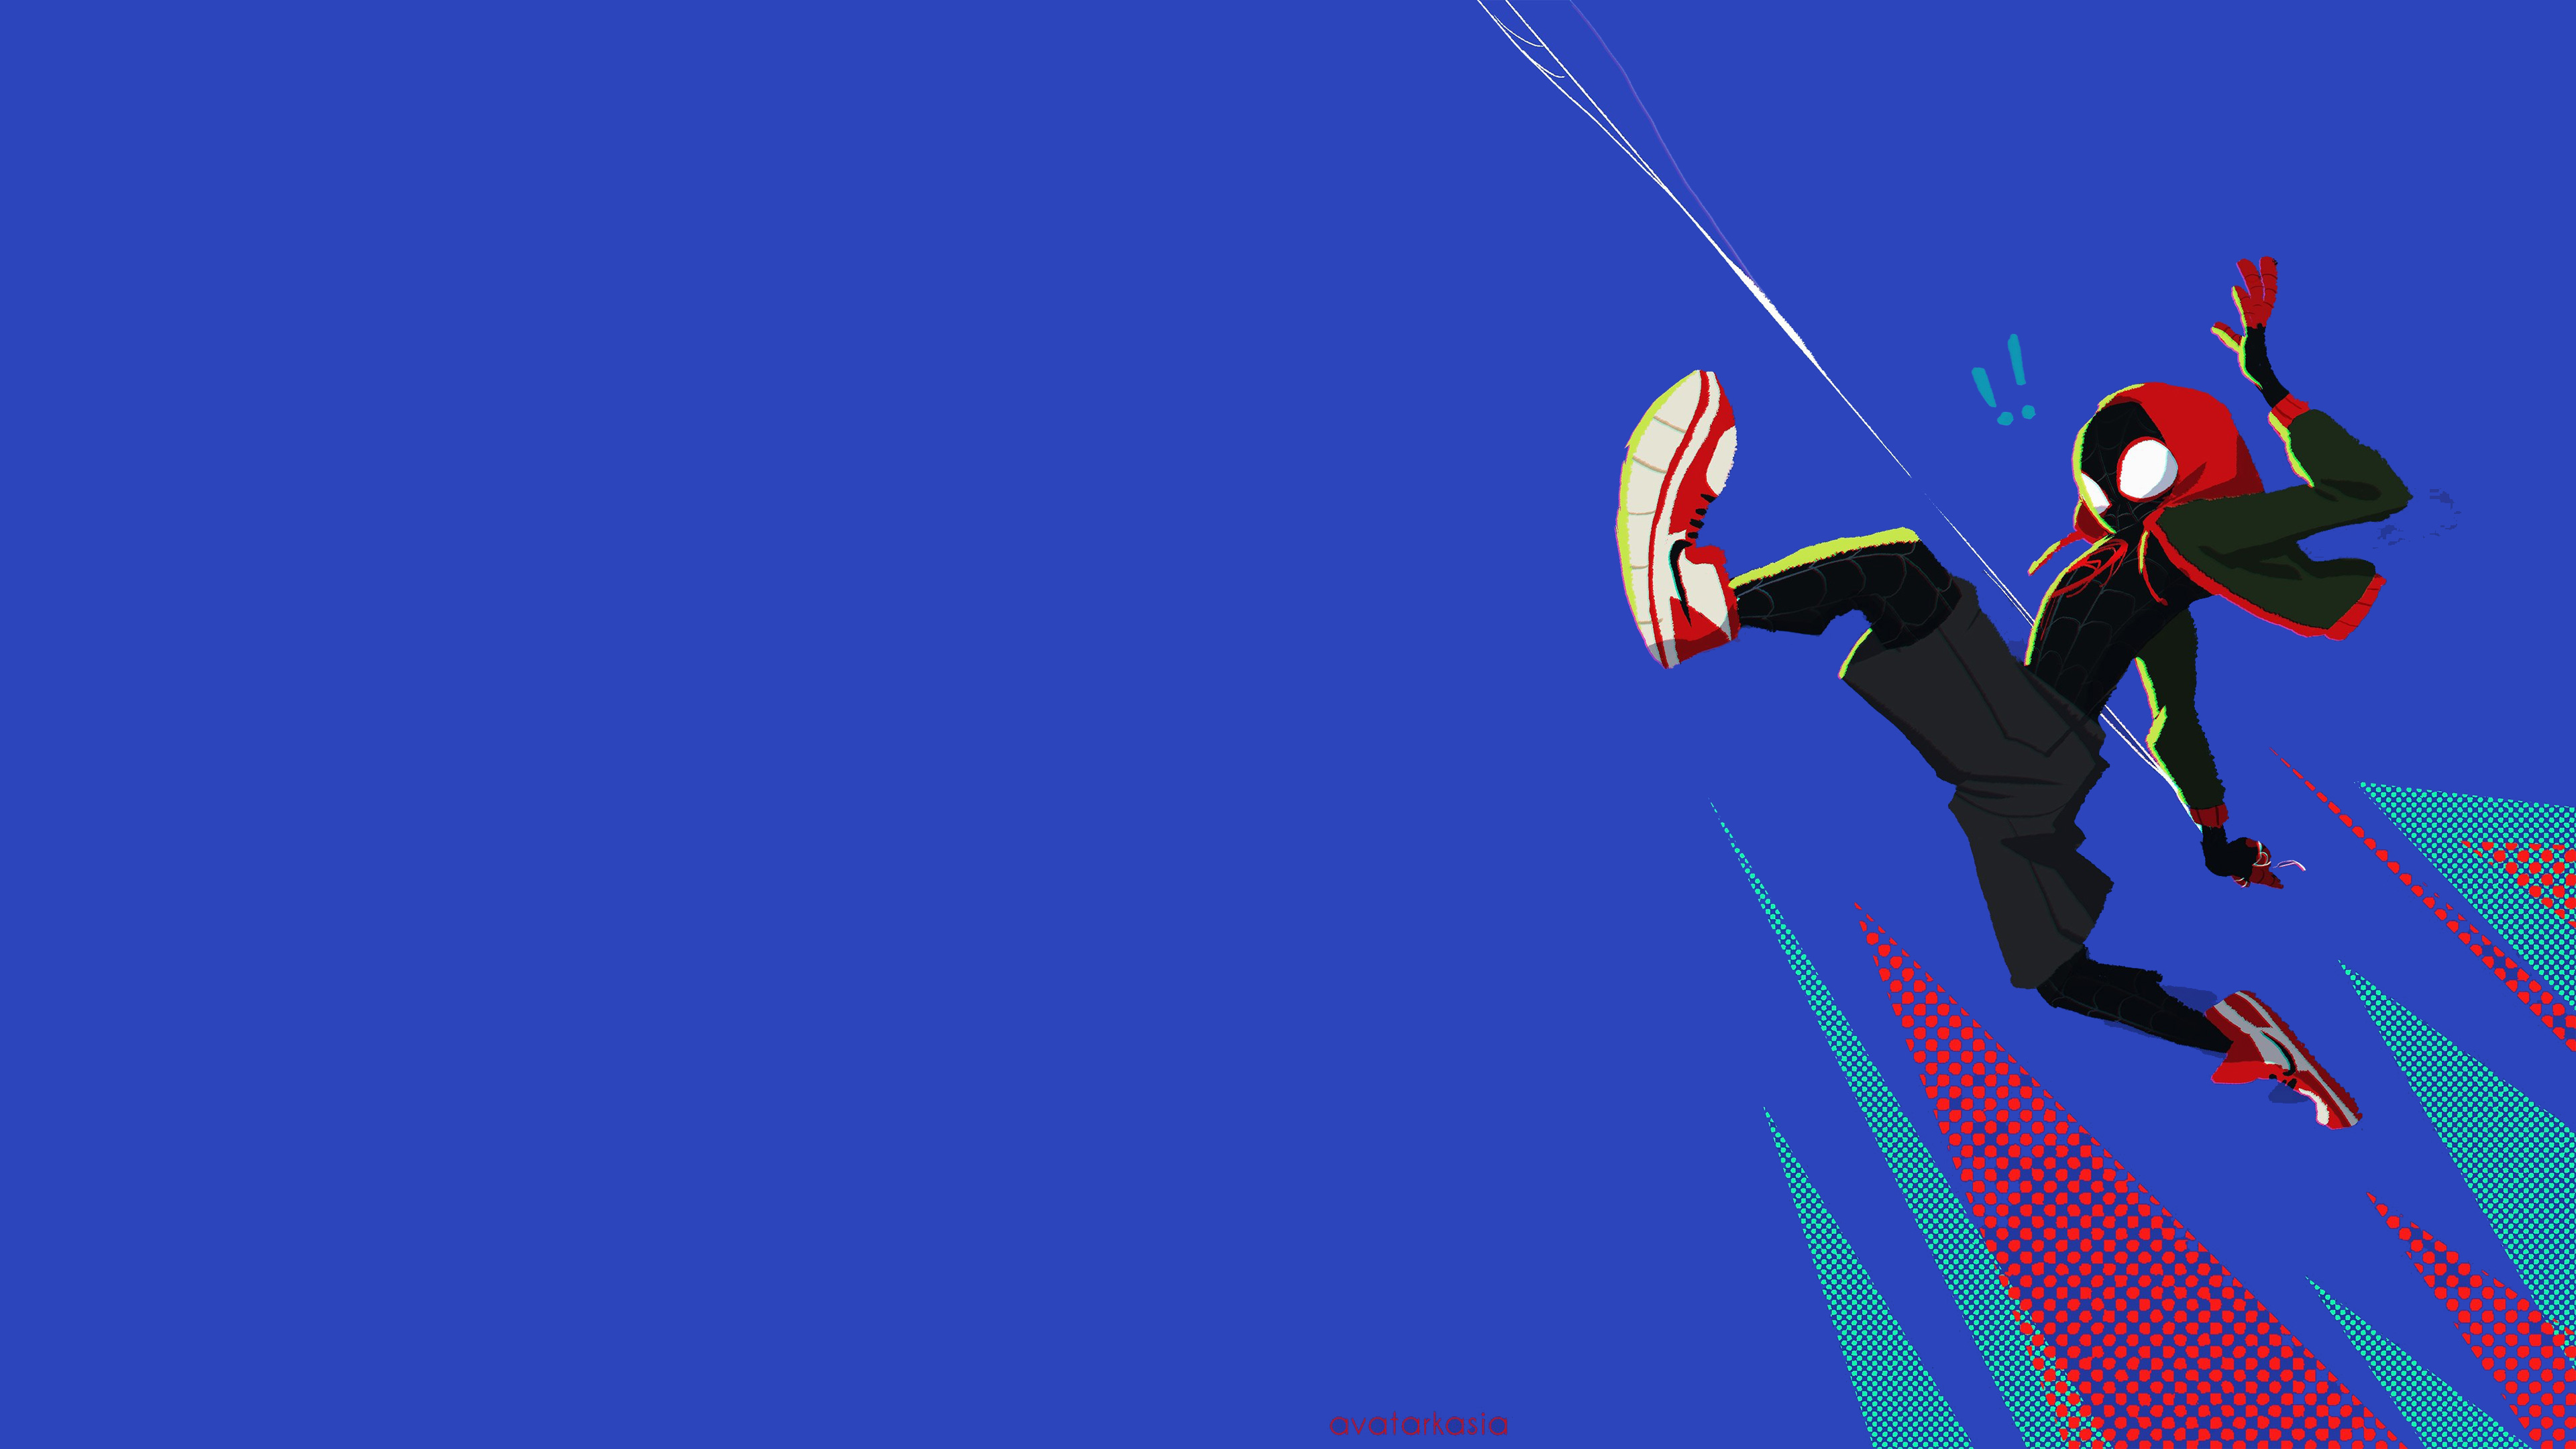 2560x1440 Spiderman Into The Spider Verse Movie 4k 2018 Art 1440p